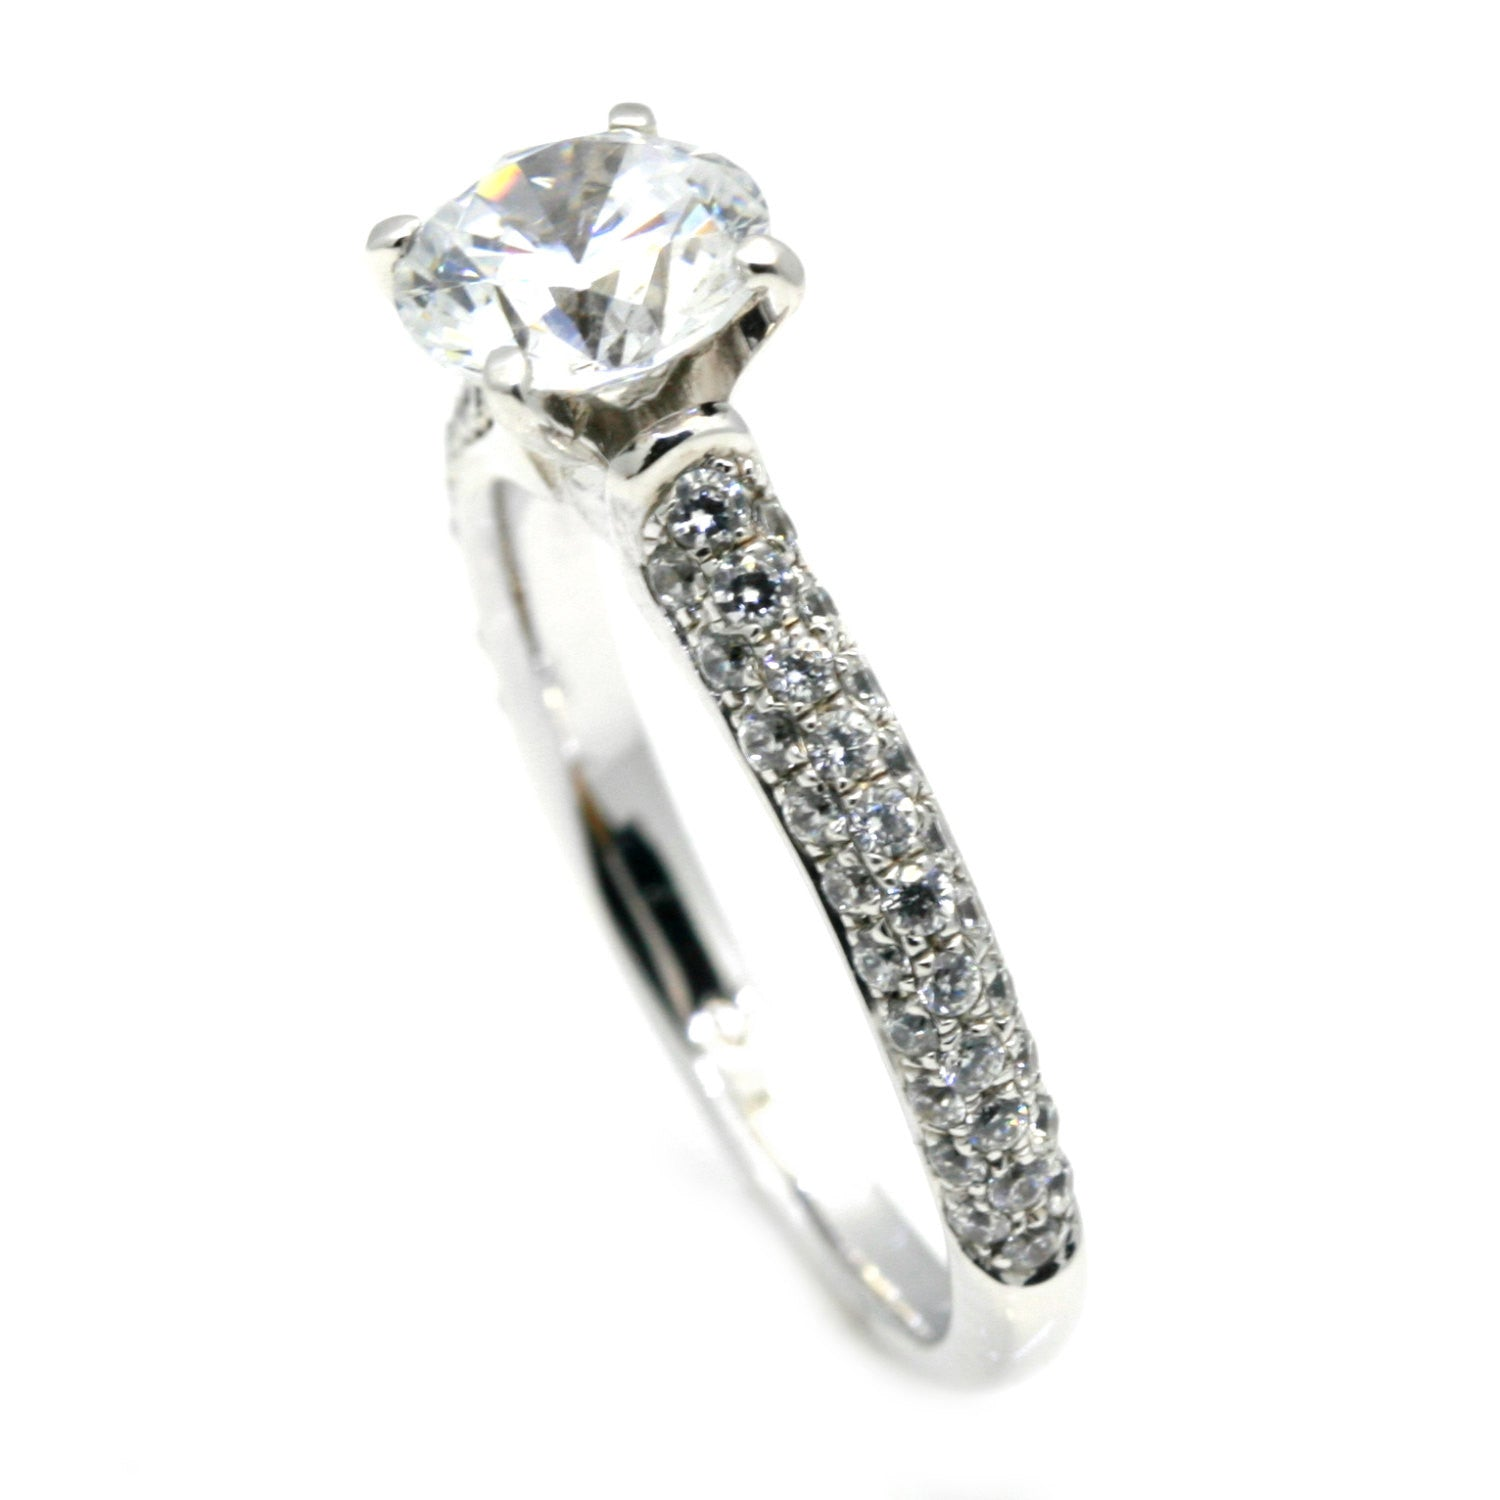 Diamond Engagement Solitaire Ring Setting for 1 Carat Center Stone, Semi Mount - 73765